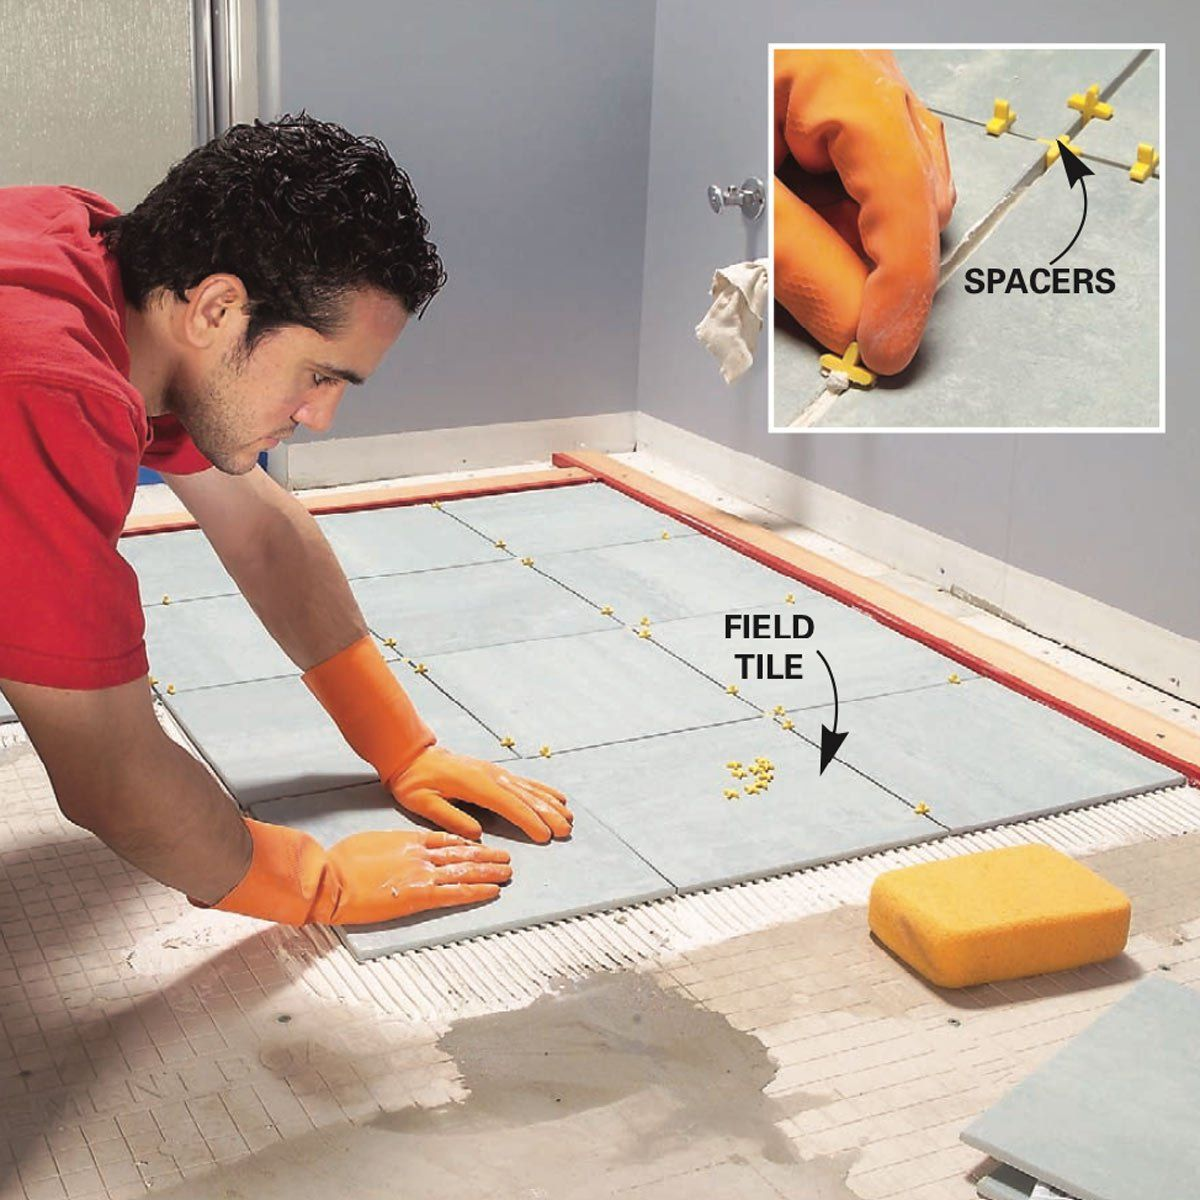 How To Install Ceramic Tile Floor In The Bathroom Ceramic Floor Tiles Tile Floor Diy Tile Floor